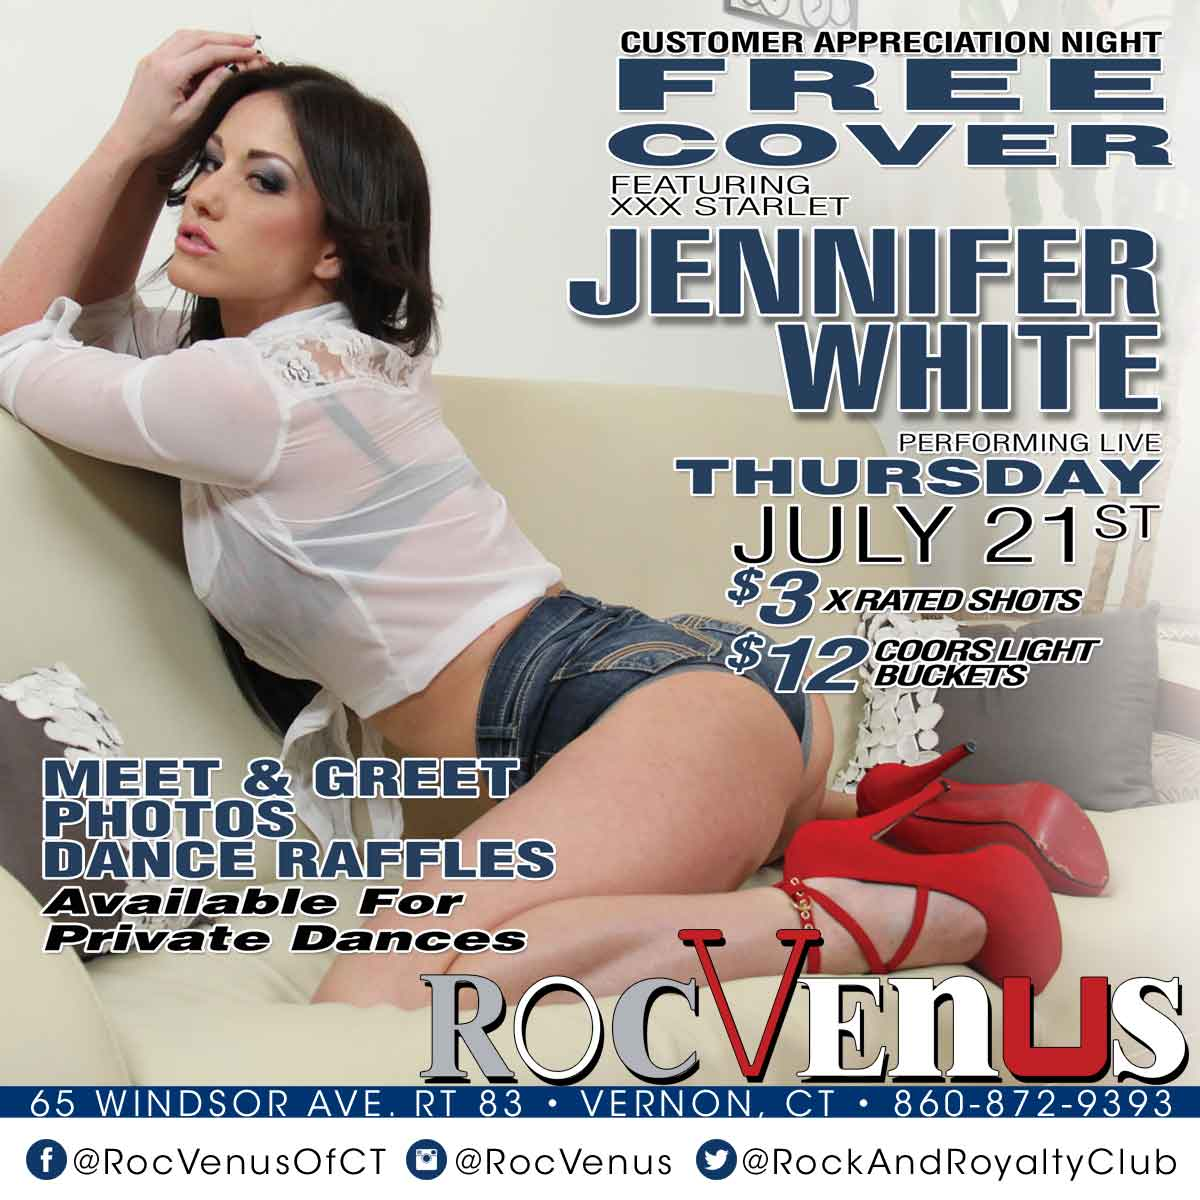 Porn Star Jennifer White | RocVenus Strip Club Connecticut